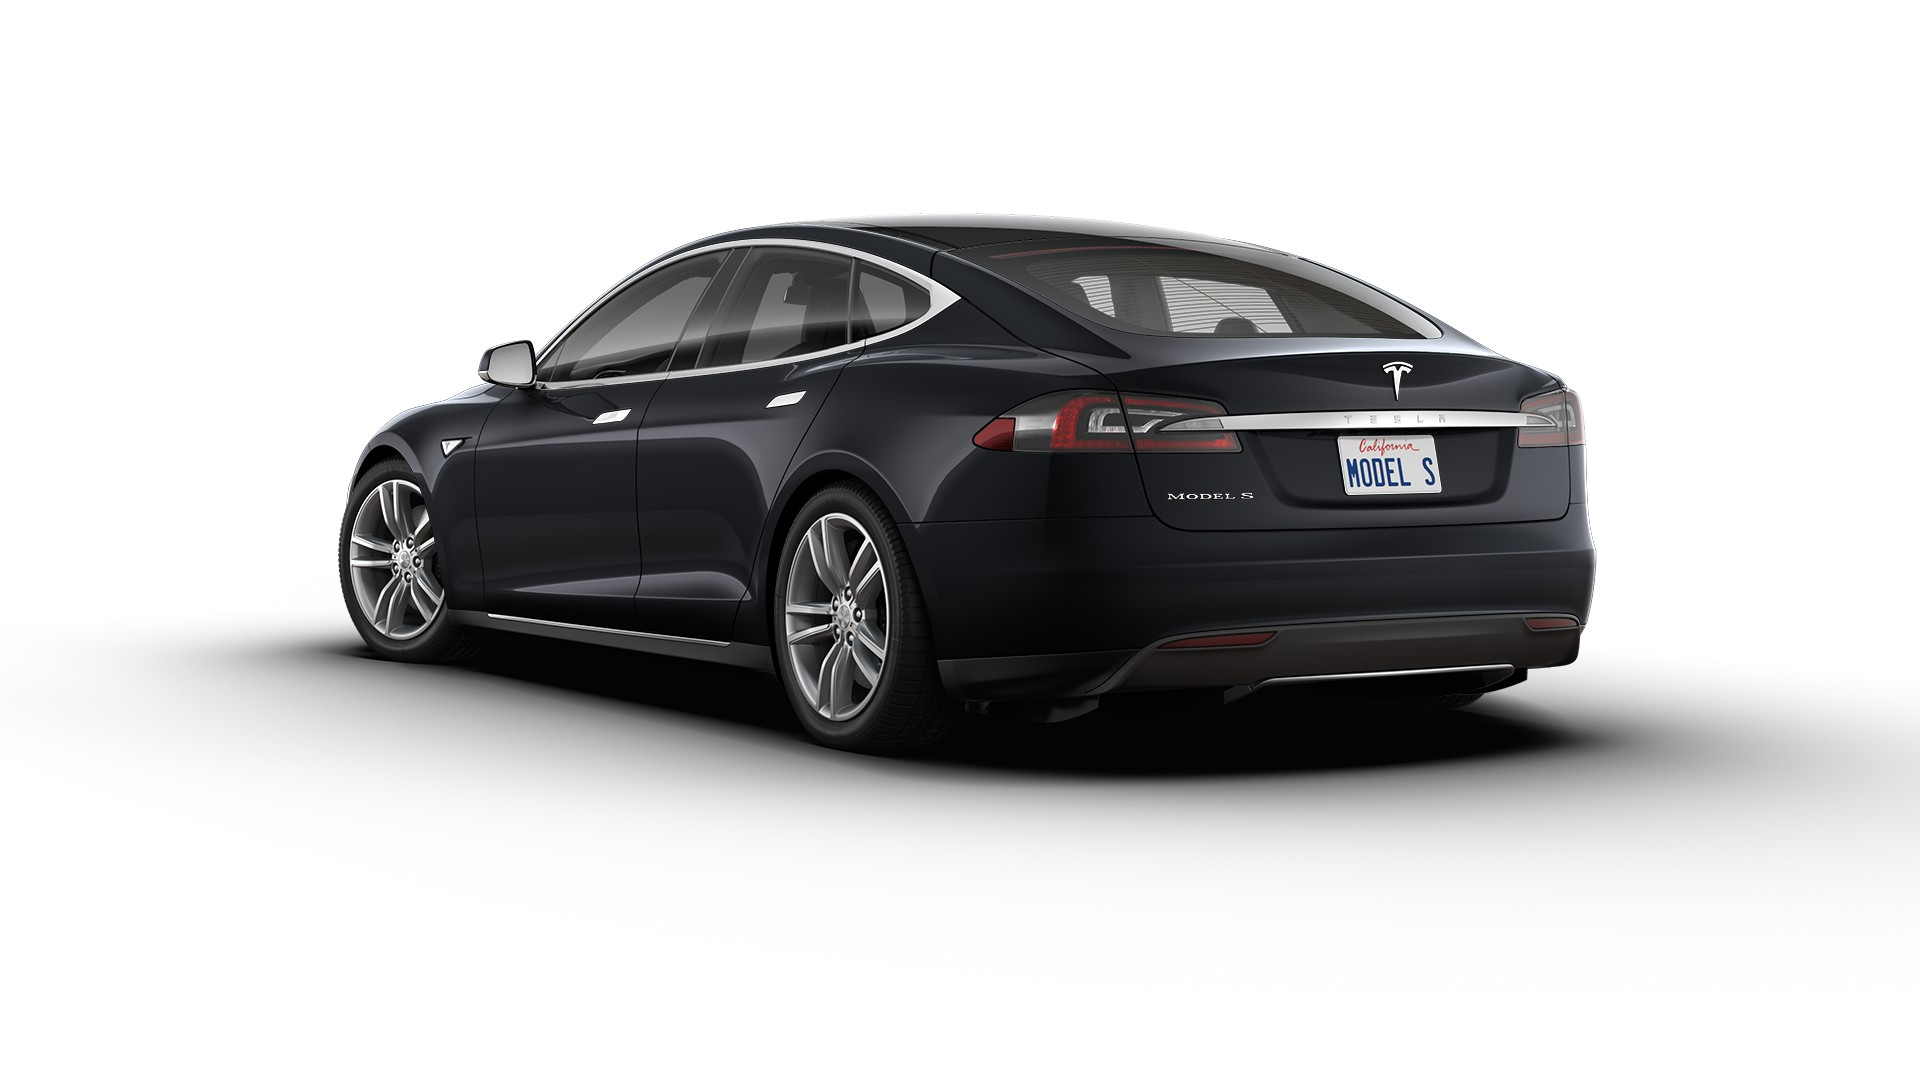 """Exterieur Midnight Silver Metallic (New Grey) 19"""" Wheels Panoramic Crystal Roof"""